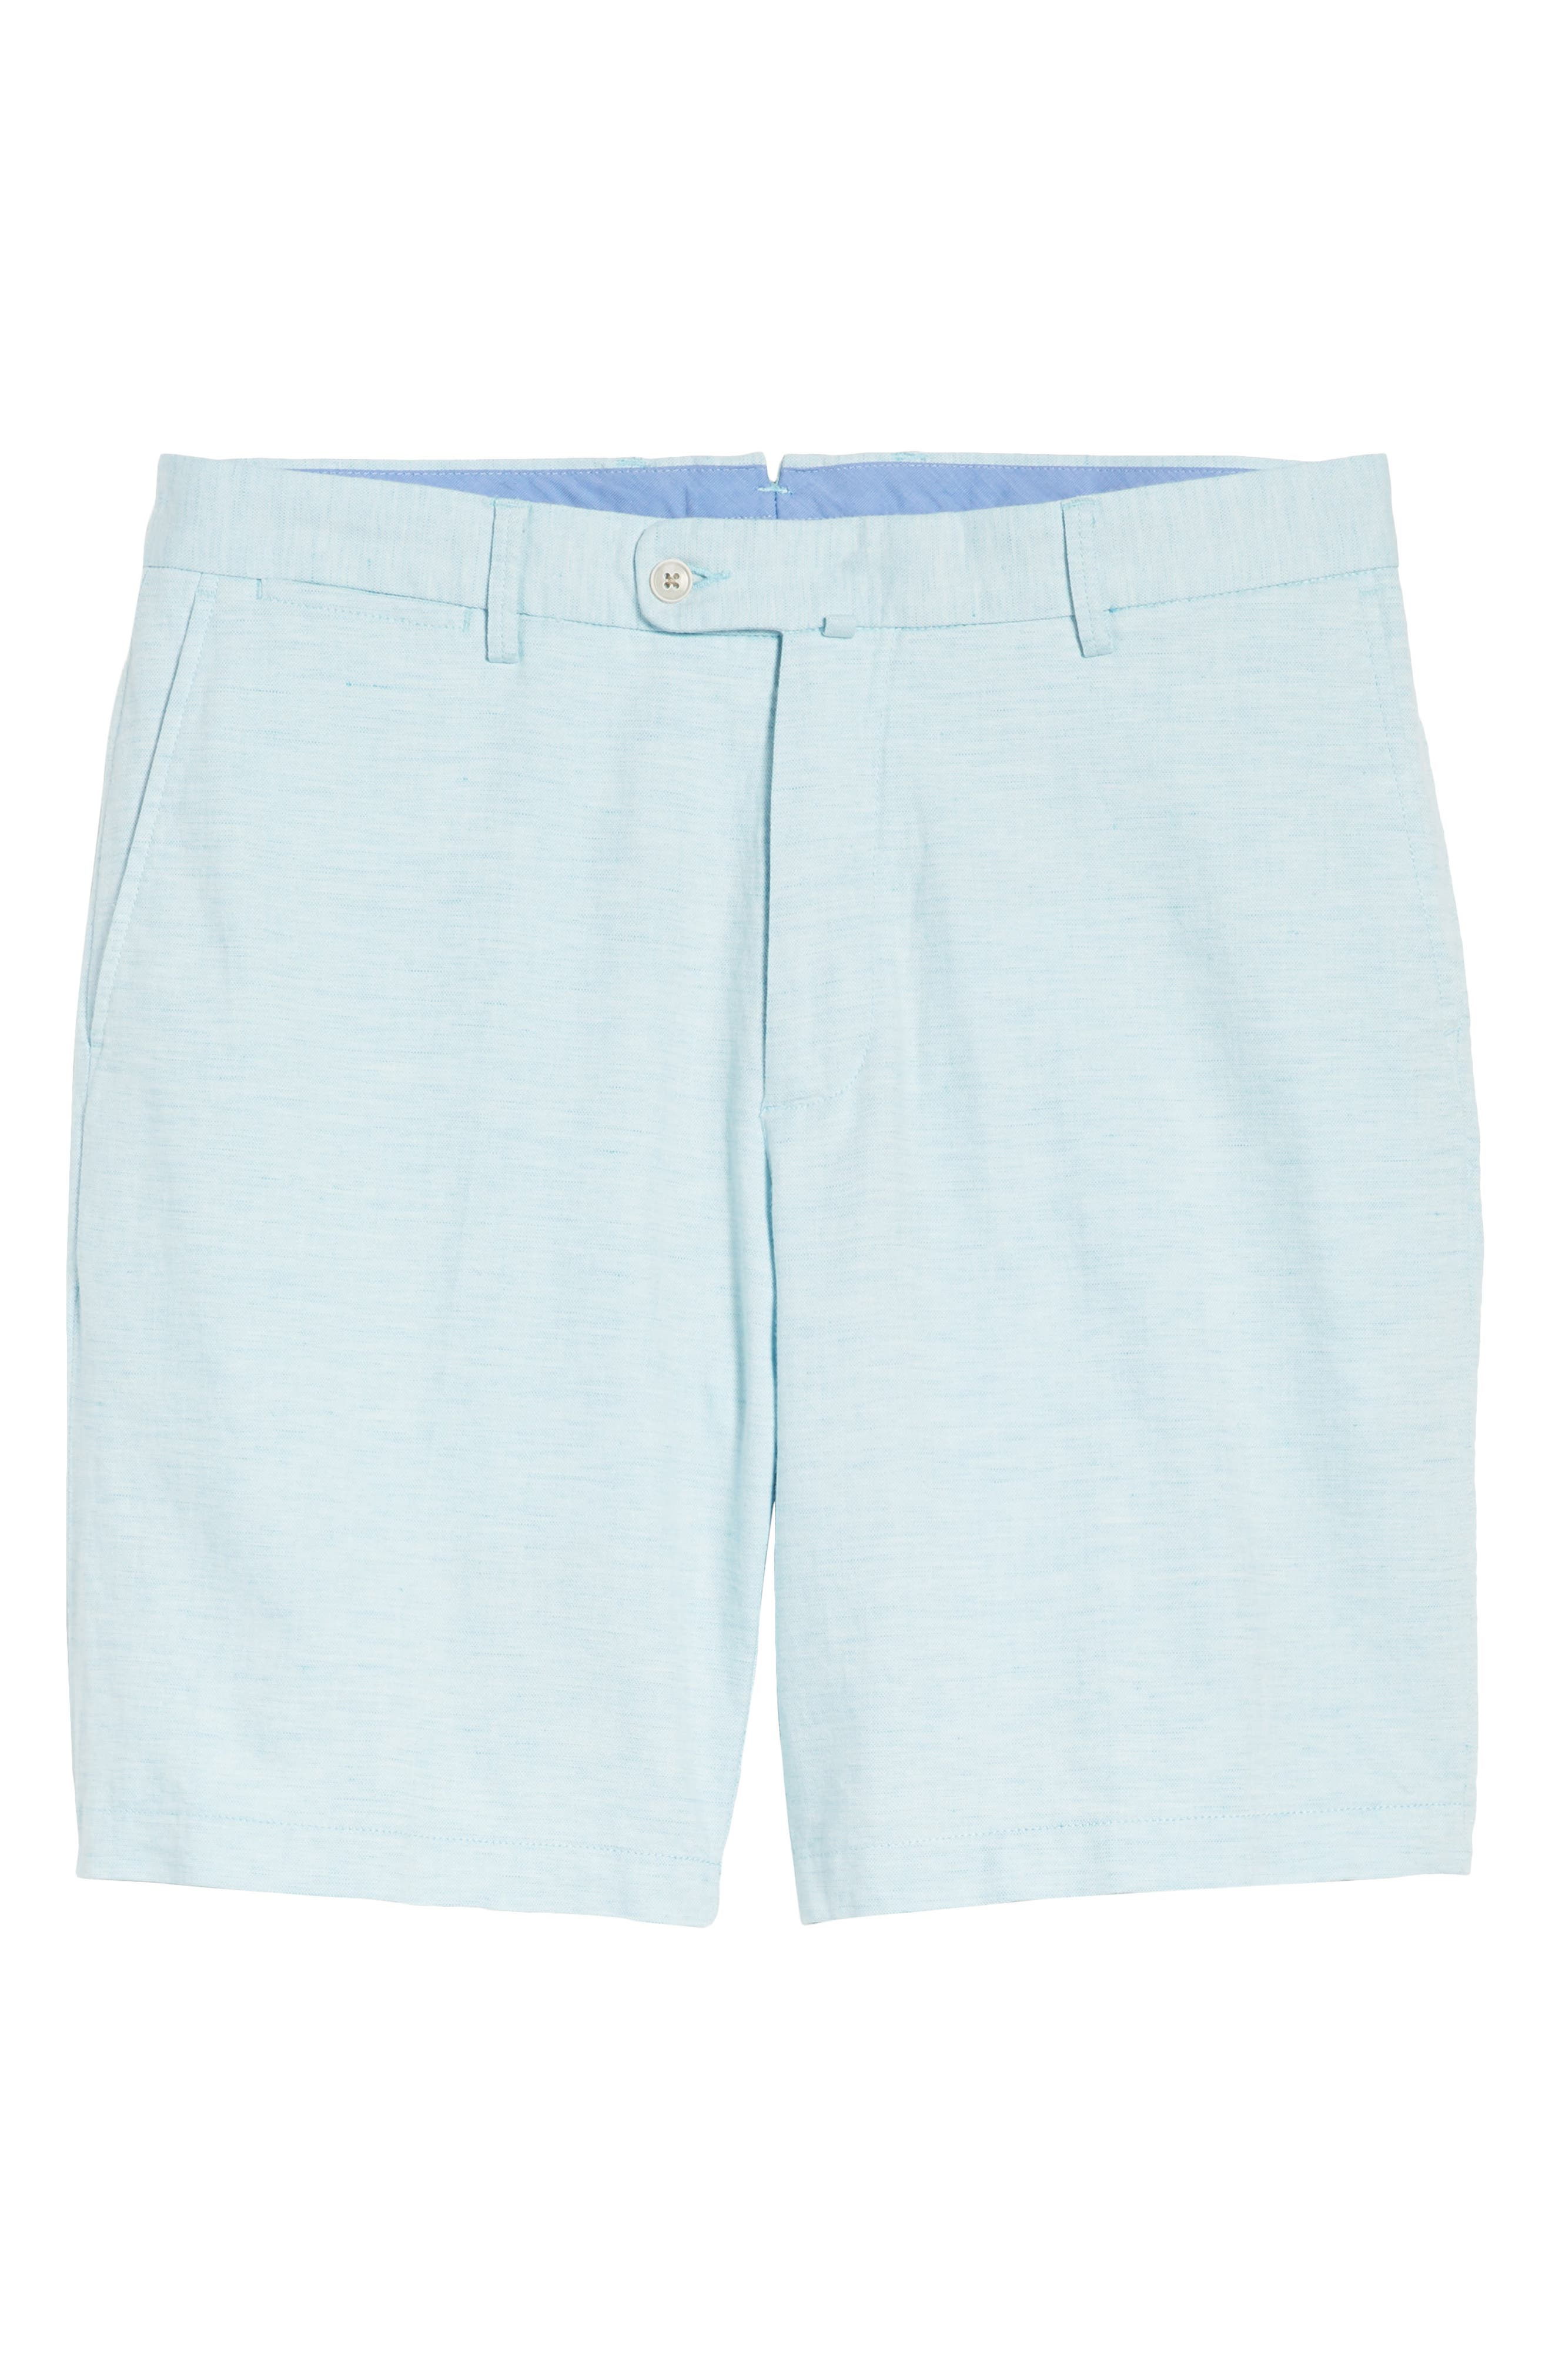 Crown Cool Delave Flat Front Shorts,                             Alternate thumbnail 6, color,                             Grotto Blue